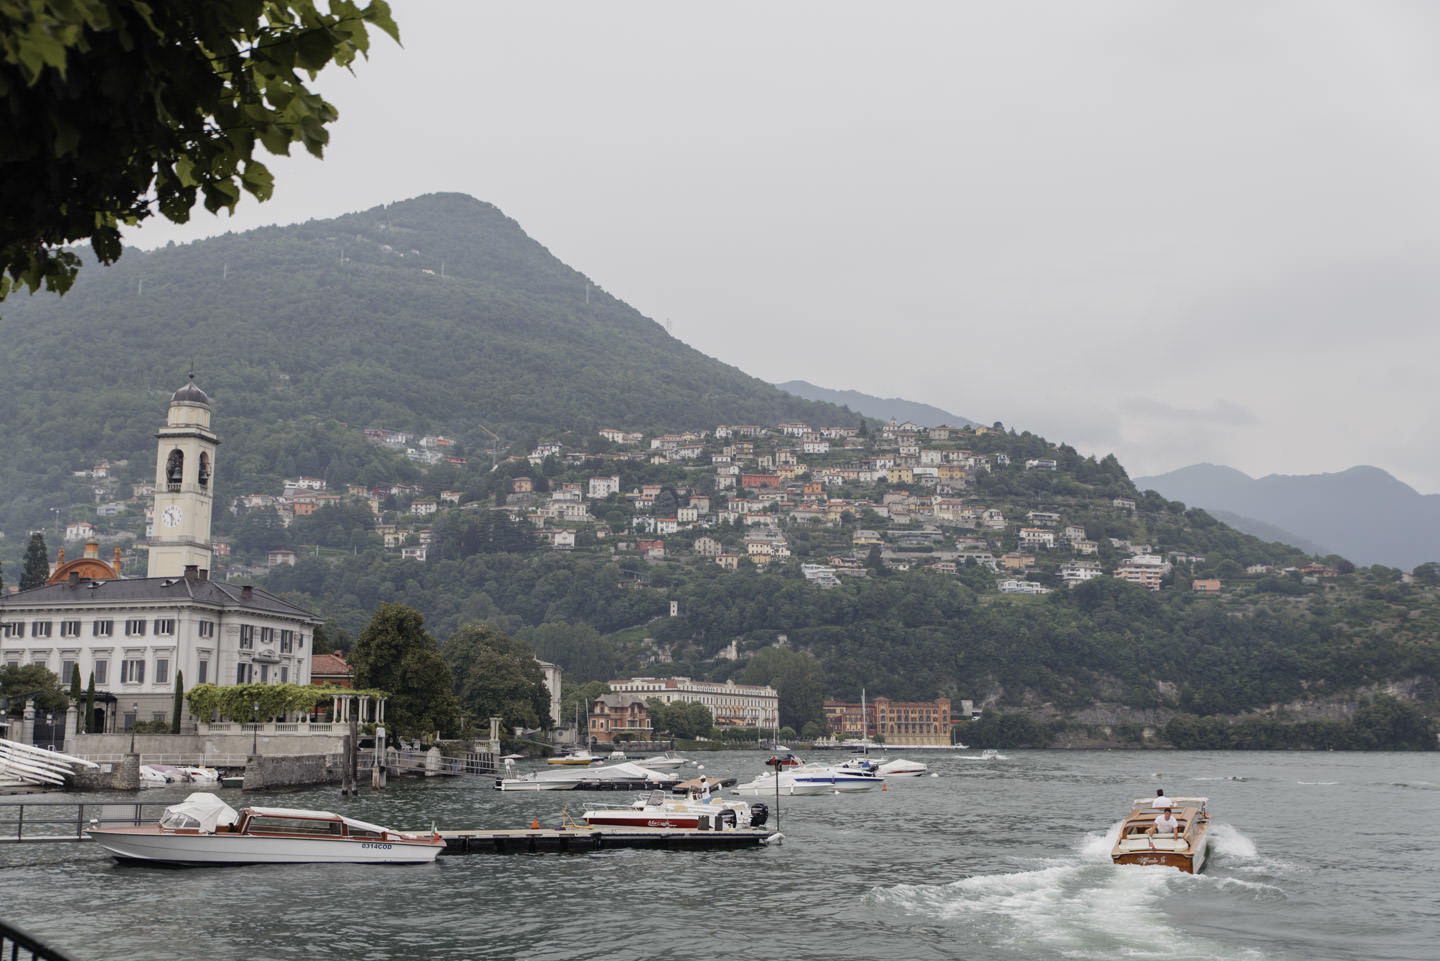 Blog-Mode-And-The-City-Lifestyle-Voyage-Italie-Trieste-Padoue-lac-Come-Verone-24